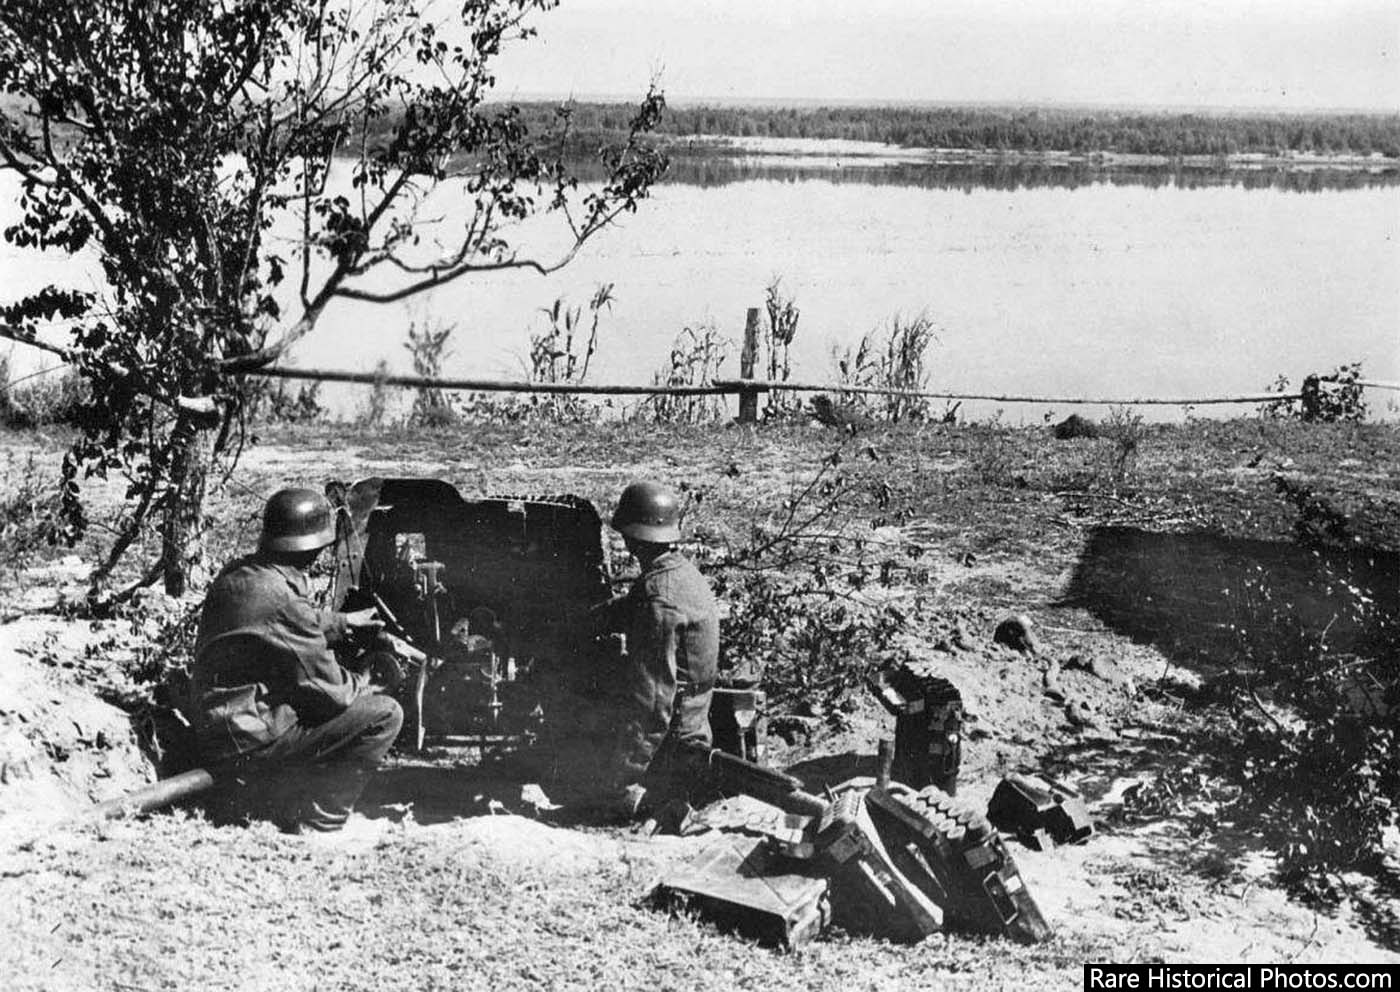 Germans with an anti-aircraft gun on the banks of the river Volga. September, 1942..